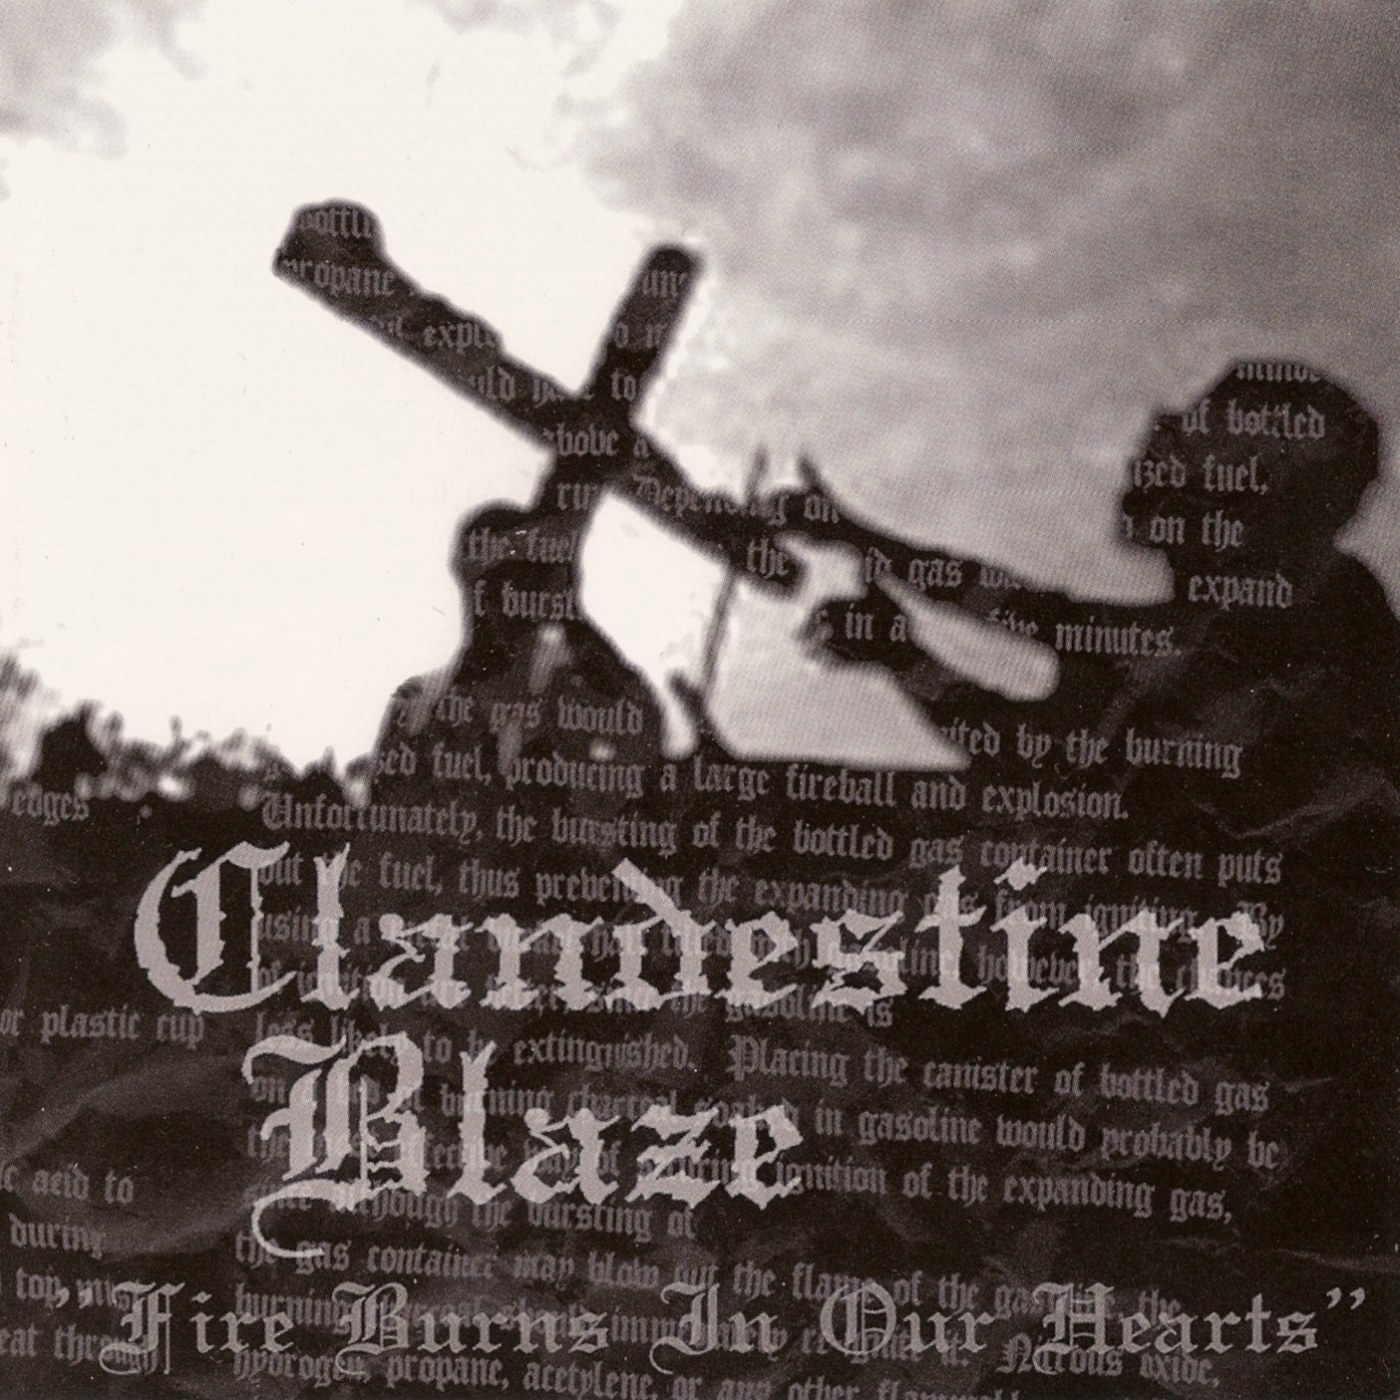 Review for Clandestine Blaze - Fire Burns in Our Hearts